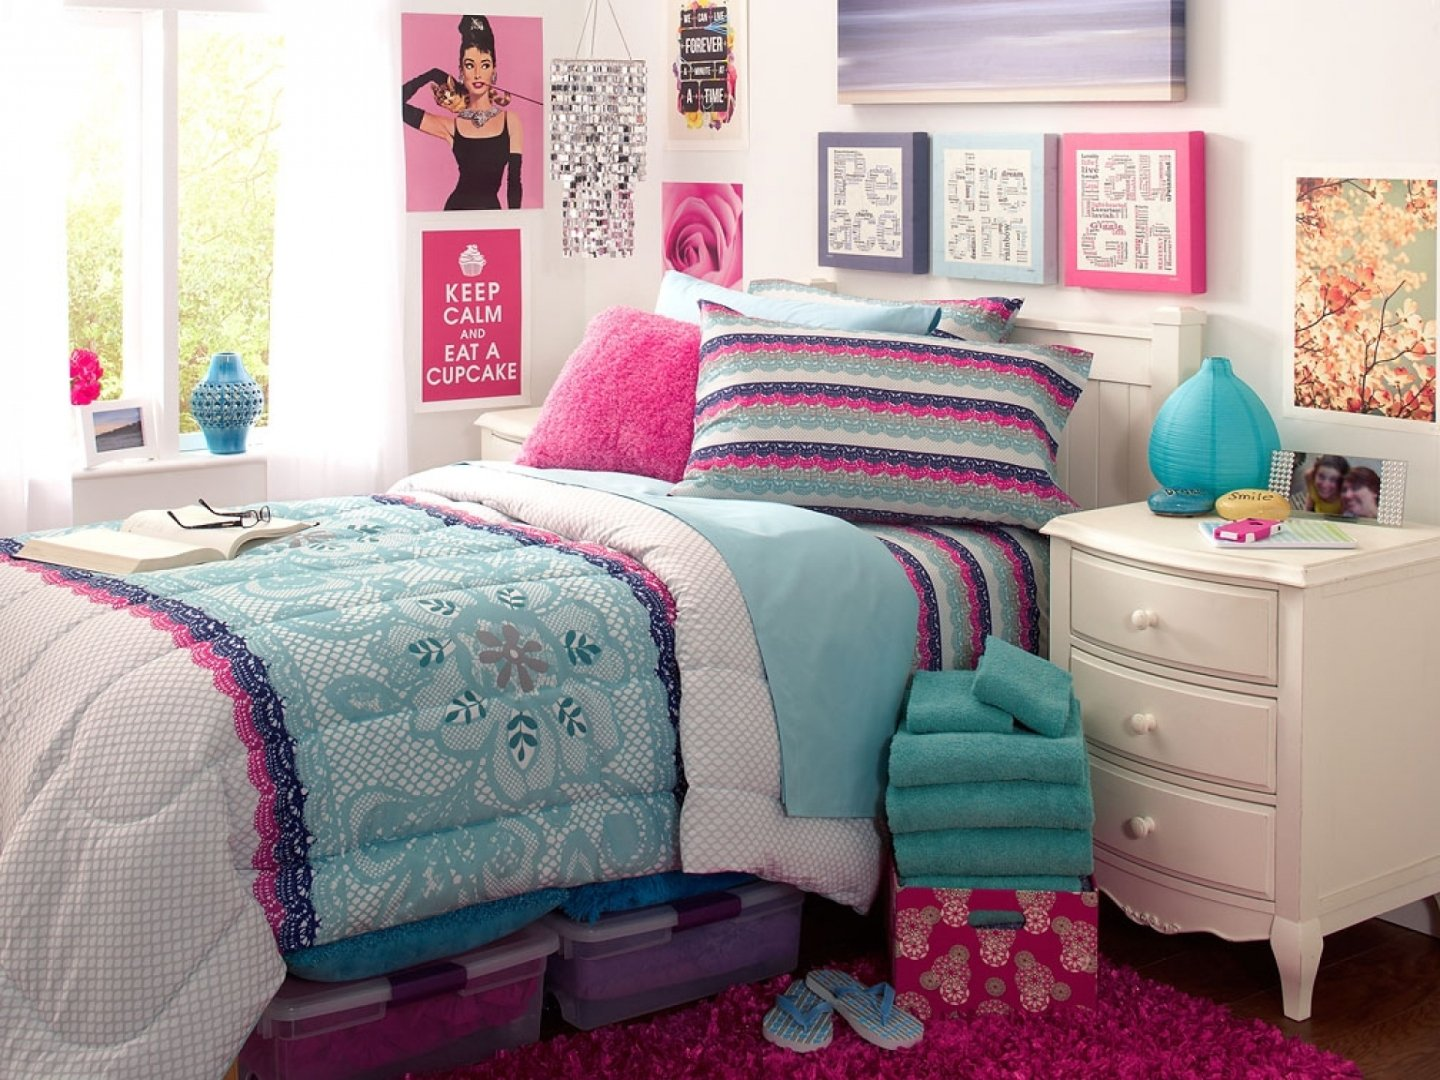 46 cute wallpapers for teenage girls on wallpapersafari - Wallpaper for teenage girl bedroom ...